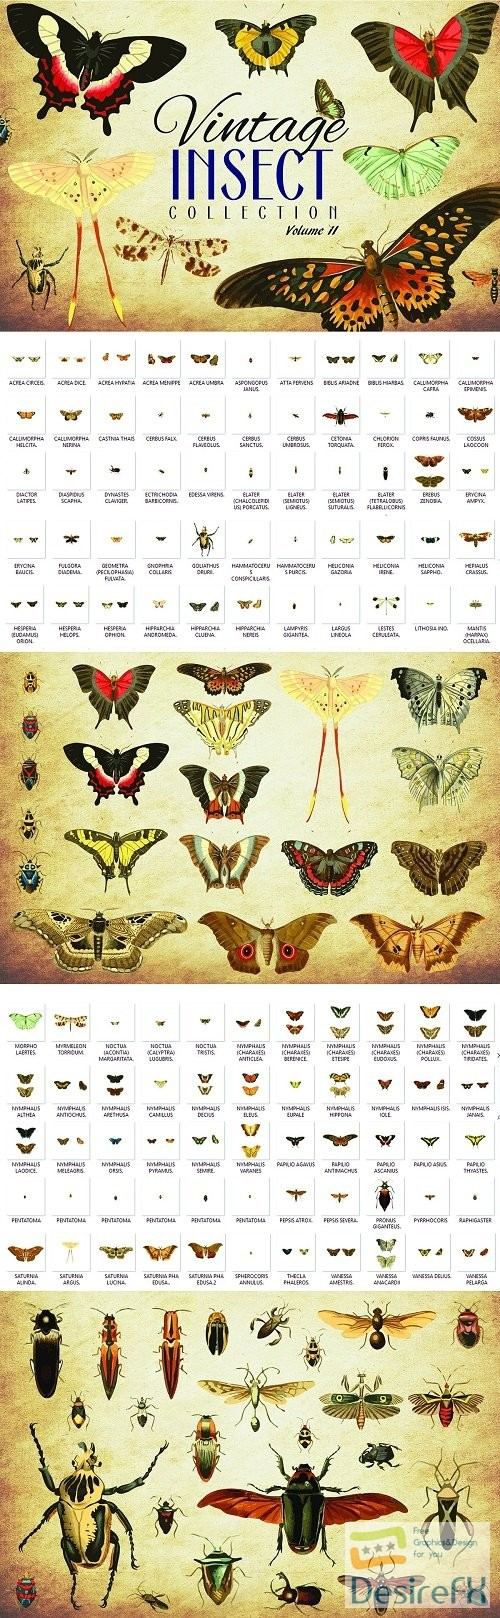 stock-vectors - 110 Vintage Insect Vector Graphics 2 - 3481948